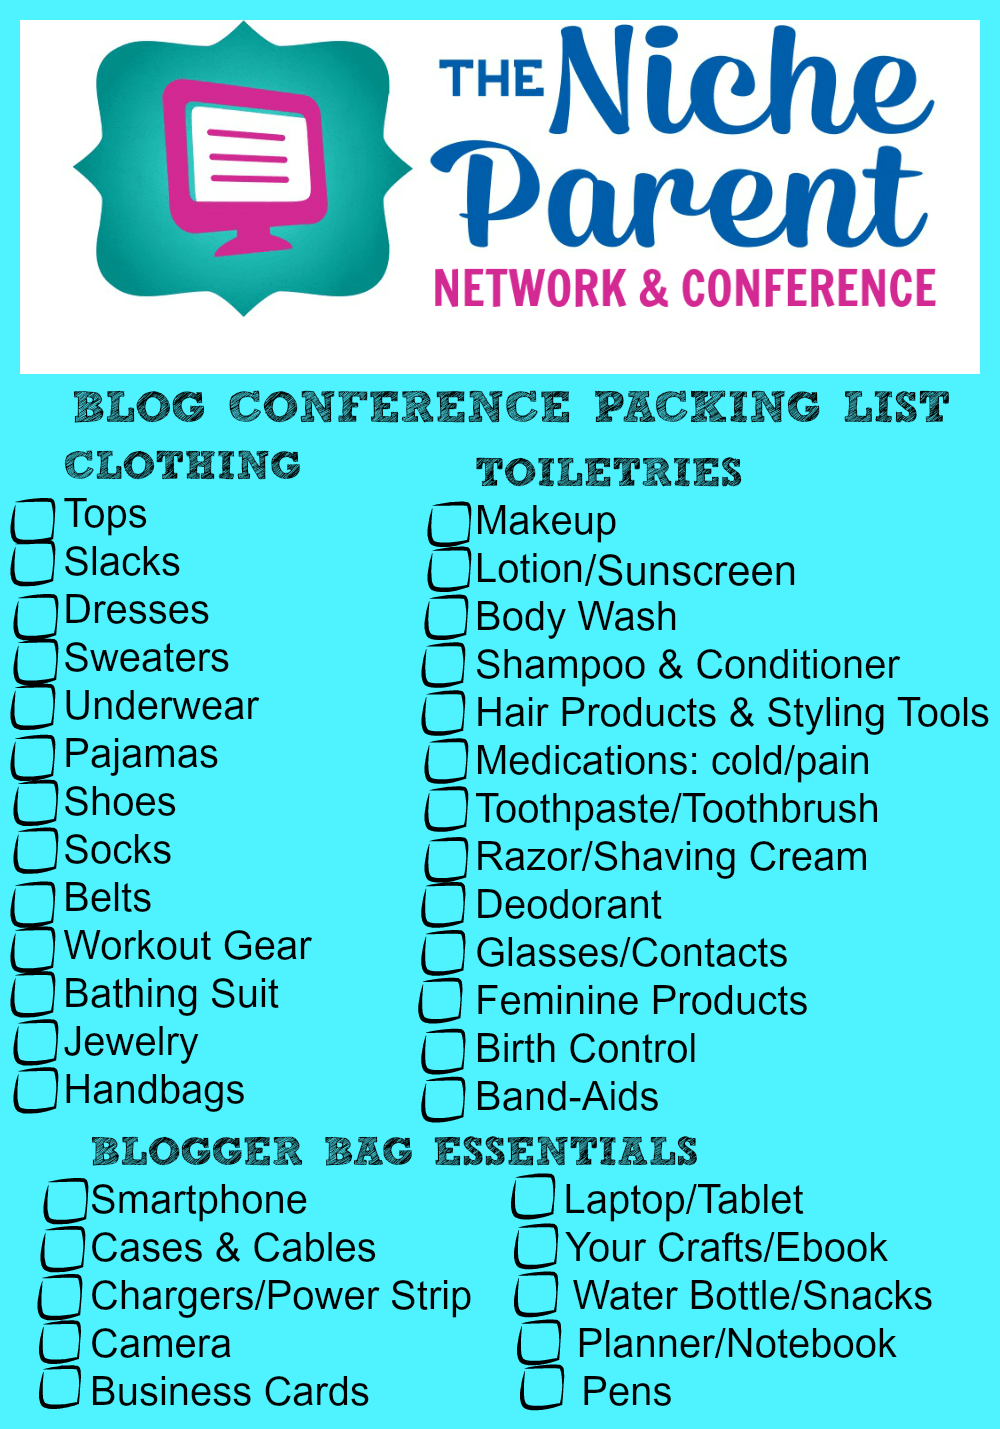 Blog Conference Packing List